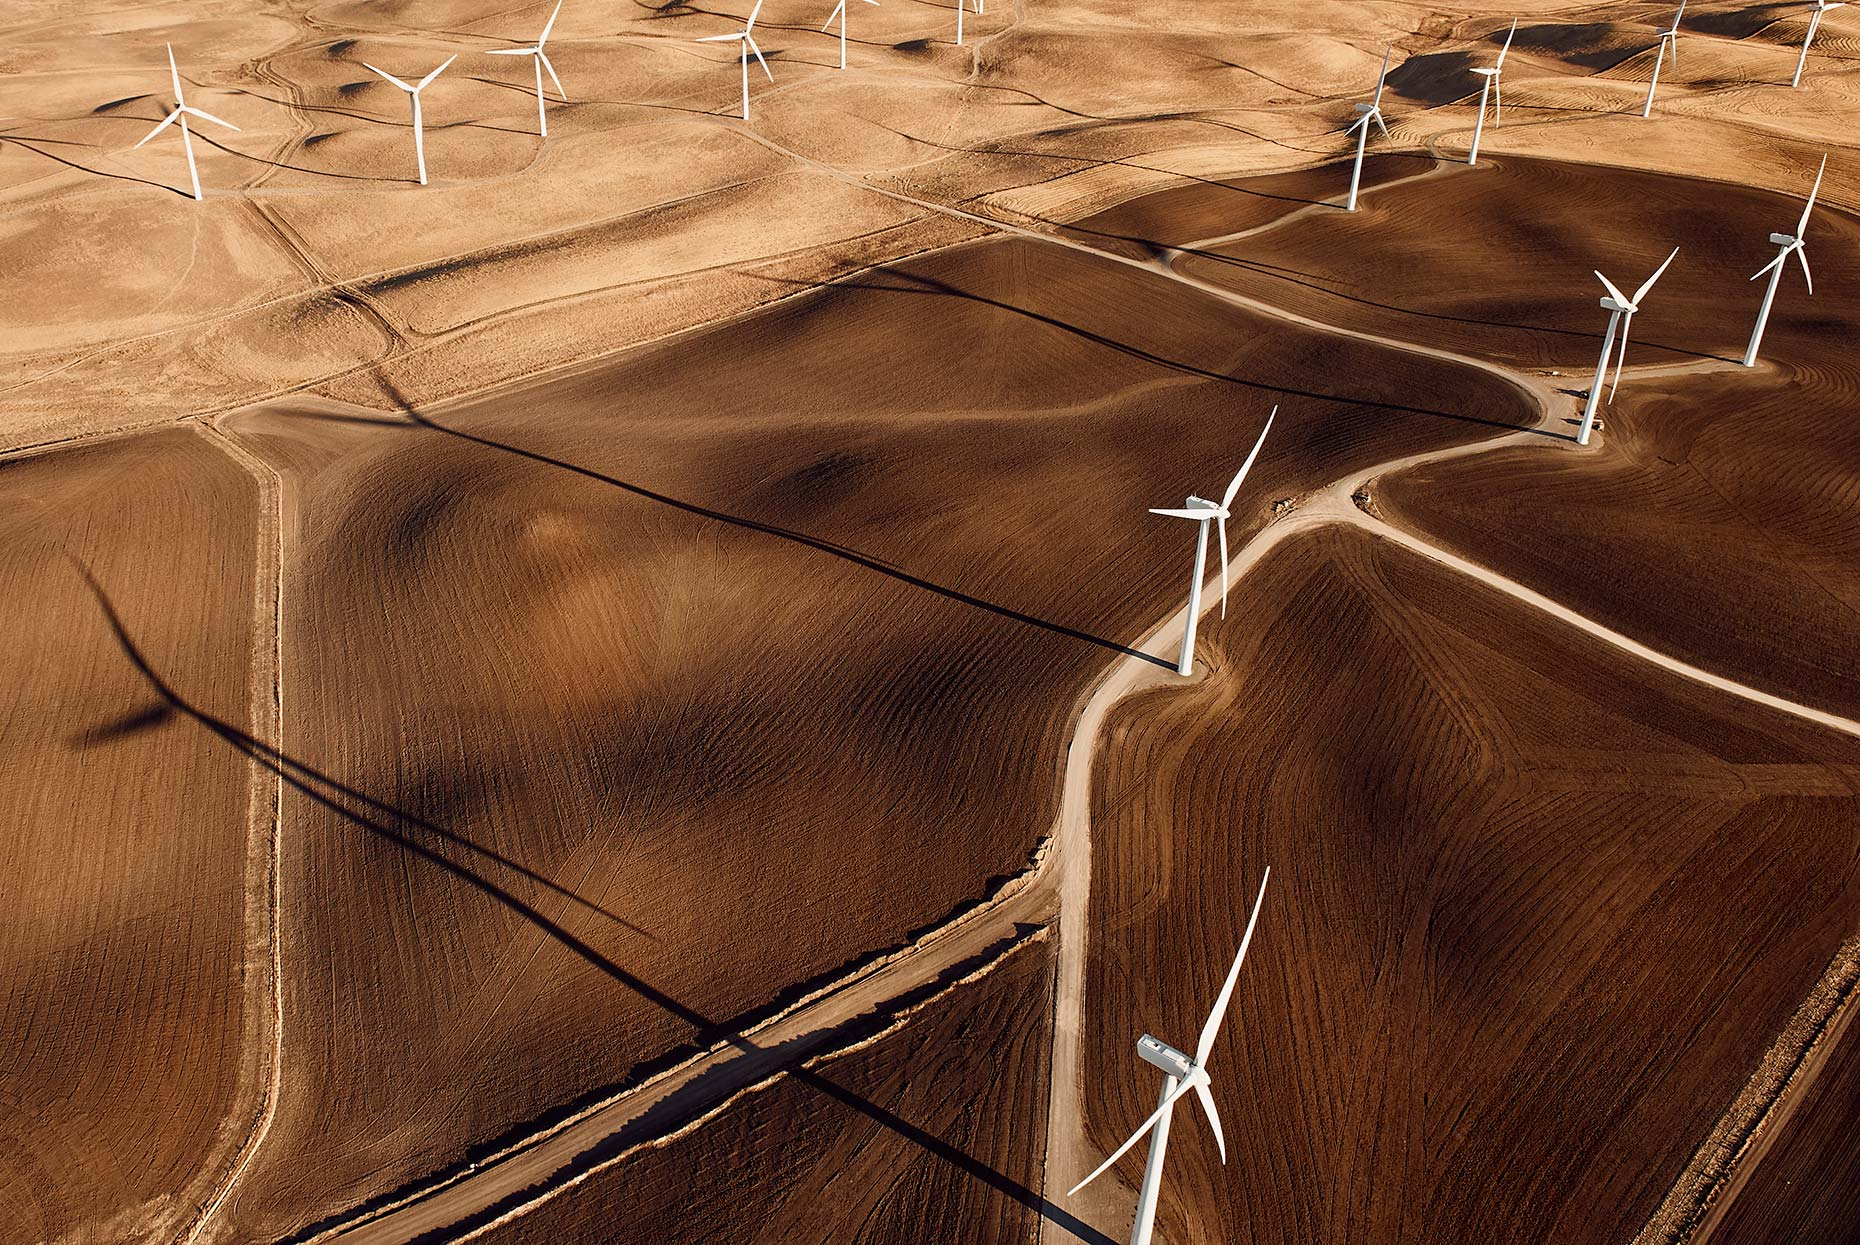 Aerail photograph of California Wind Turbines